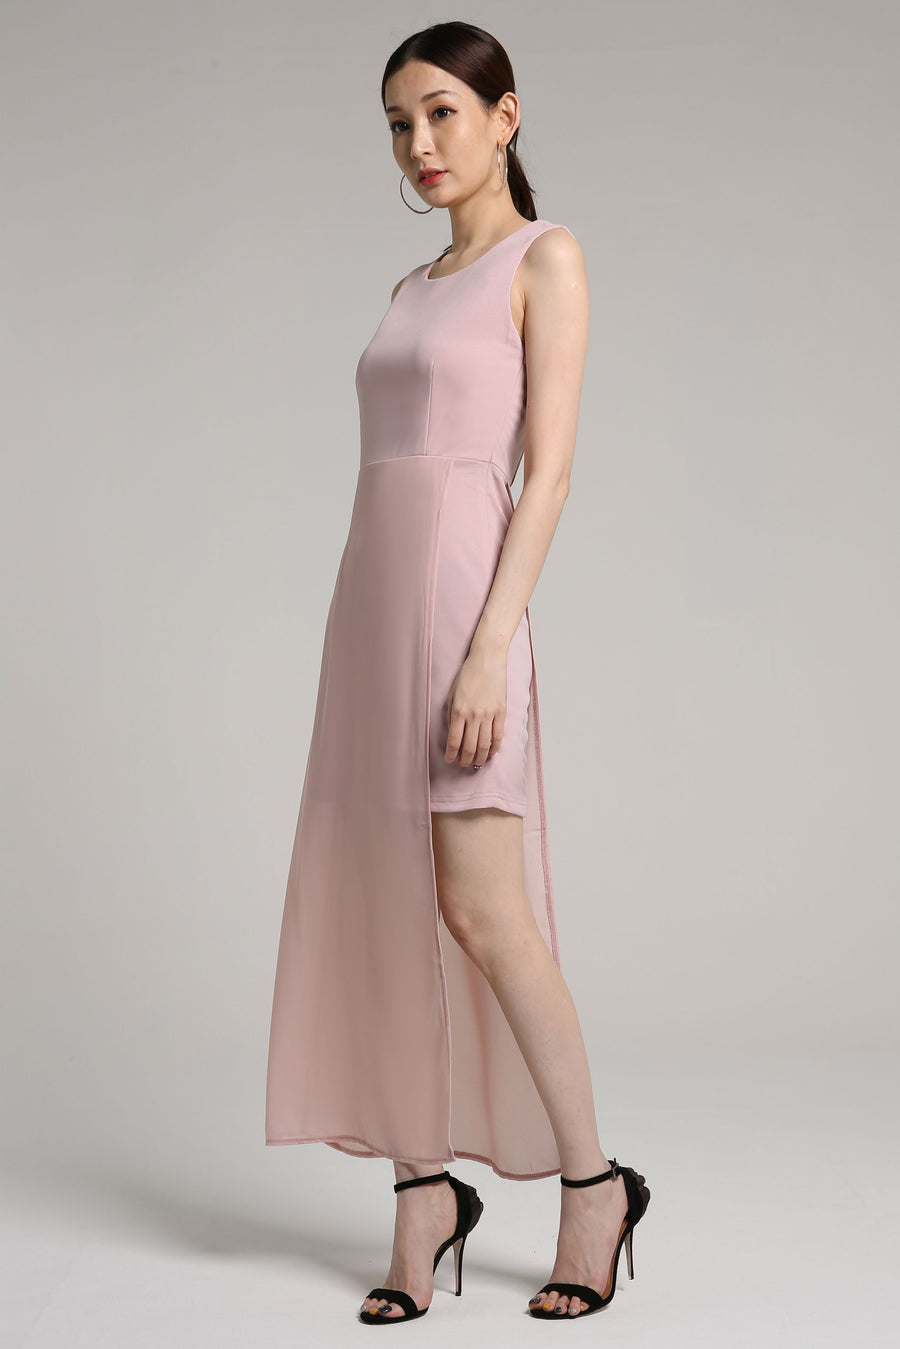 Singlet Chiffon Dress 2176 - ample-couture